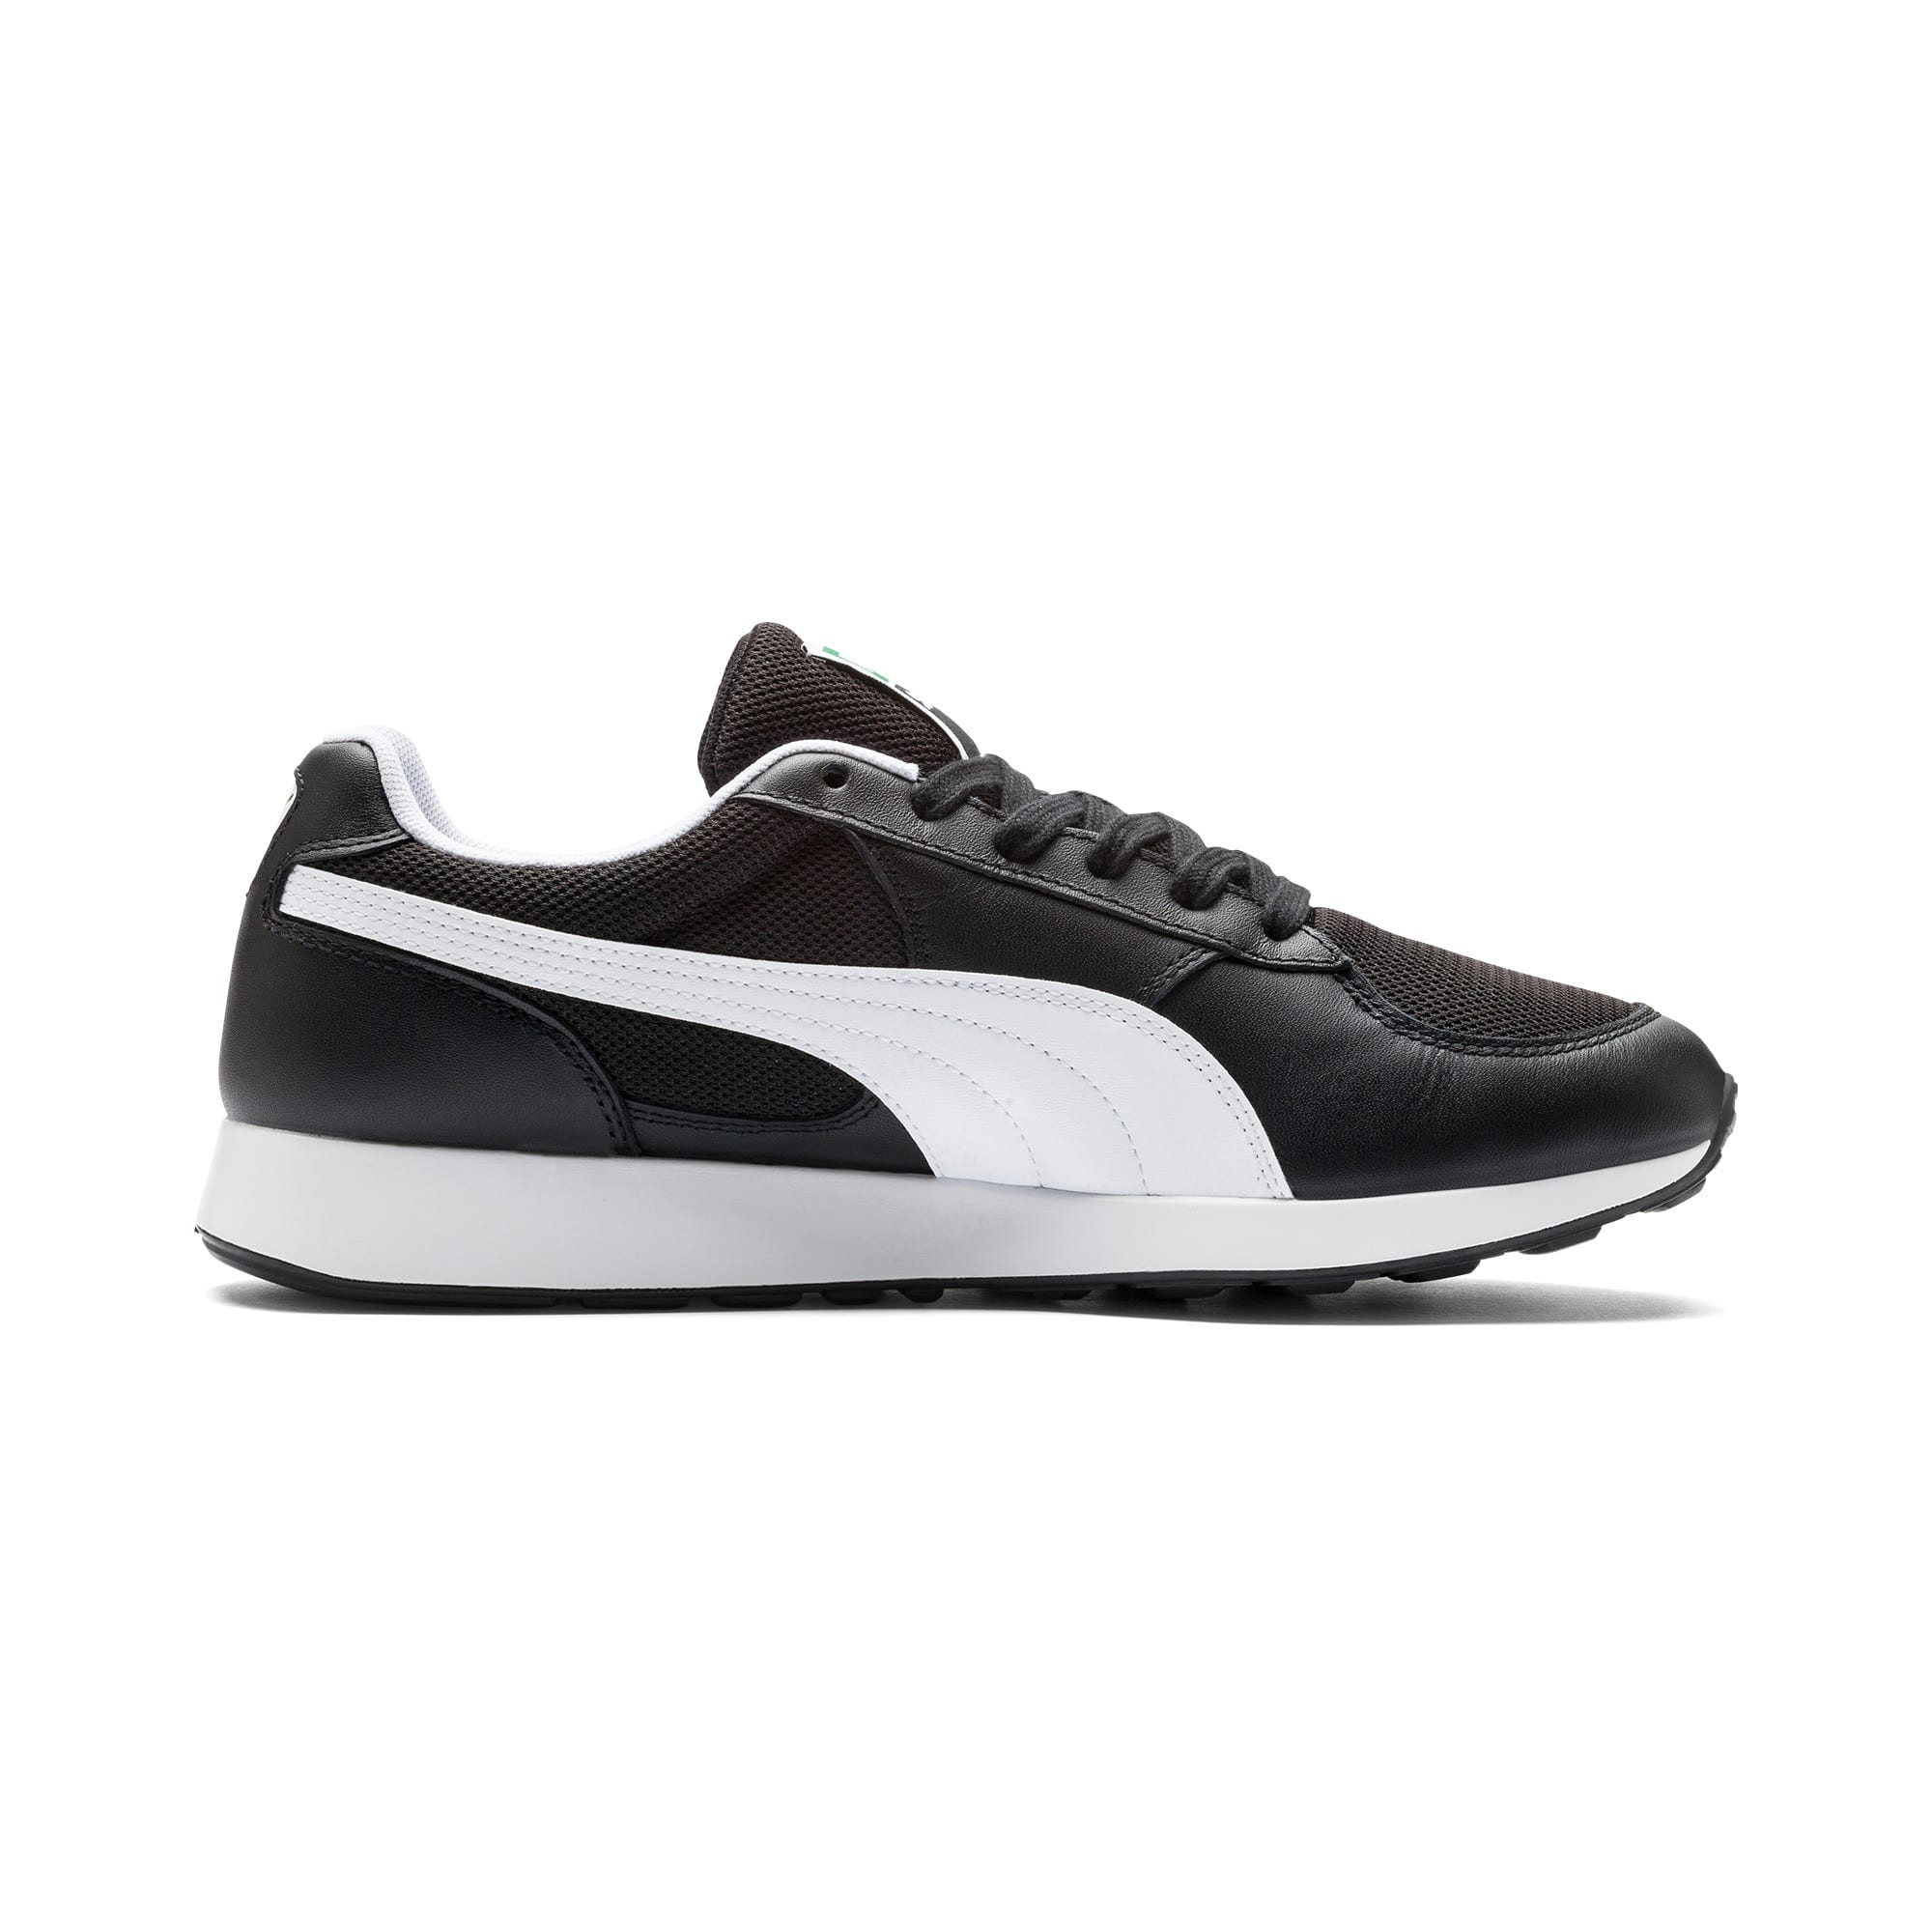 Thumbnail 5 of RS-1 OG Trainers, Puma Black-CASTLEROCK, medium